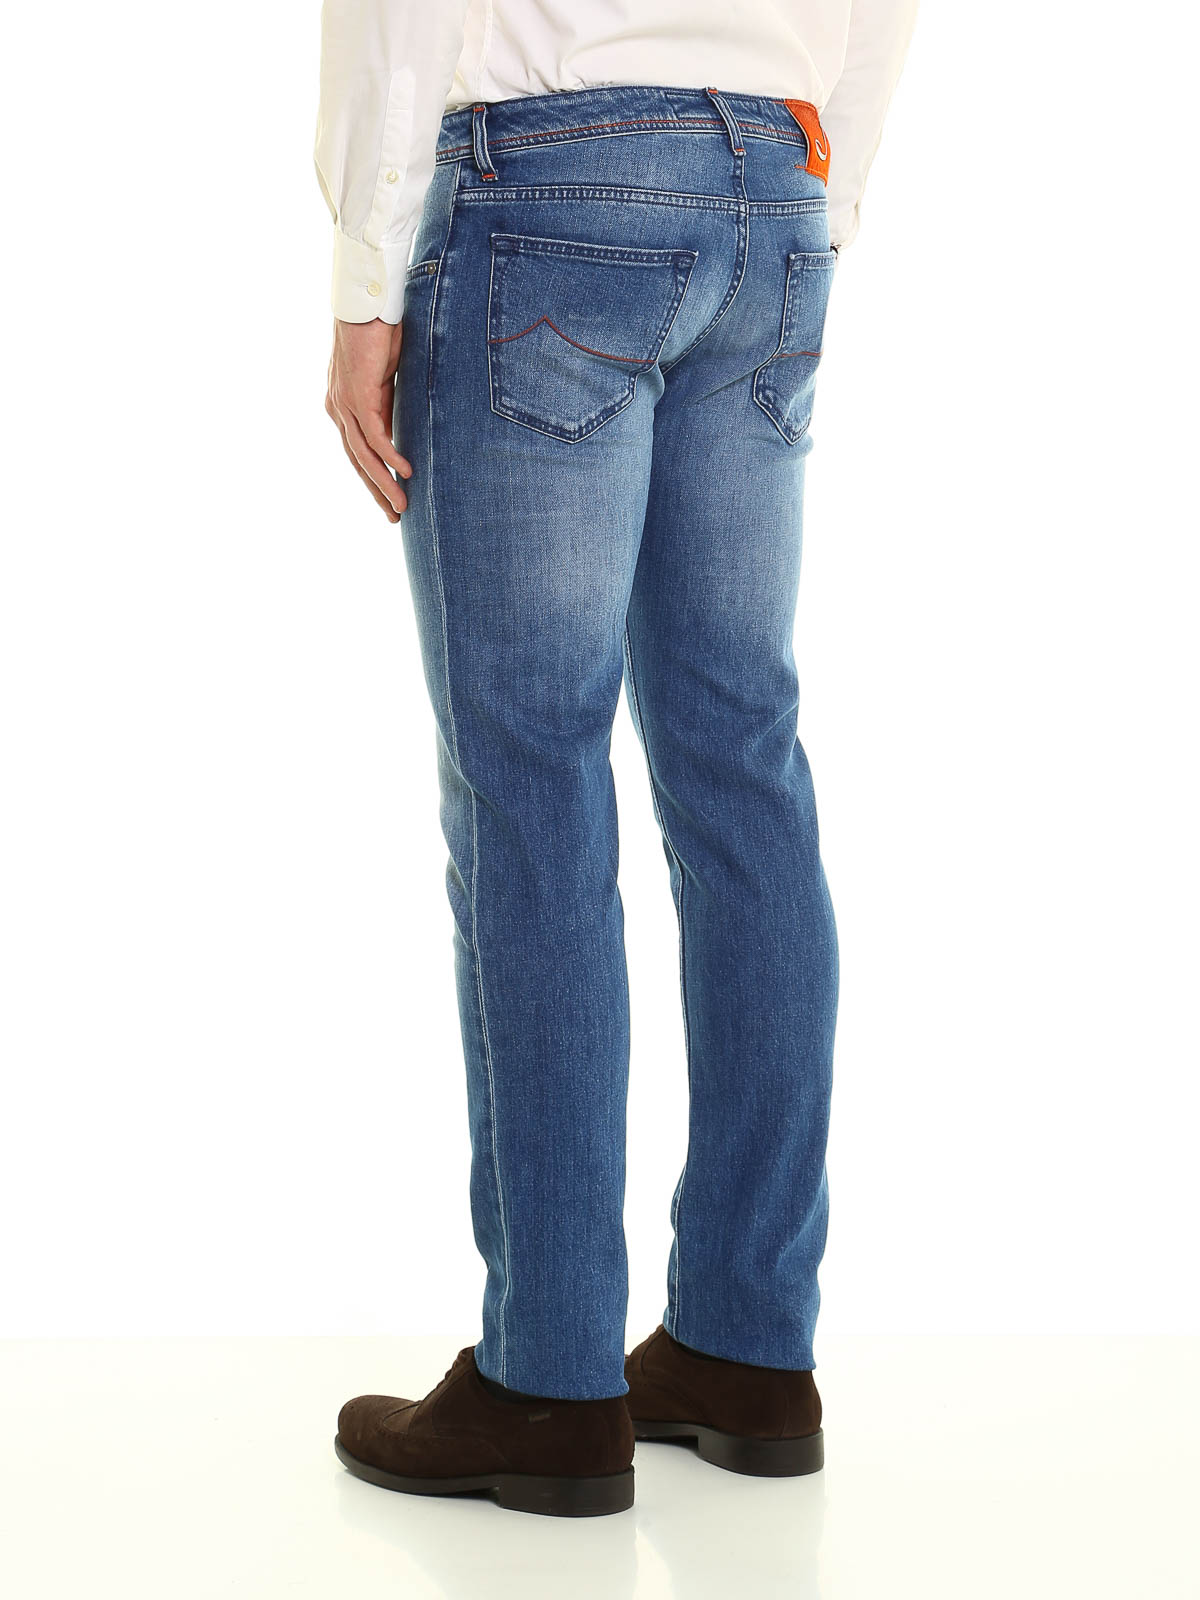 b994866d61469 Jacob Cohen - 622 Denim jeans - straight leg jeans - PW622 COMF ...